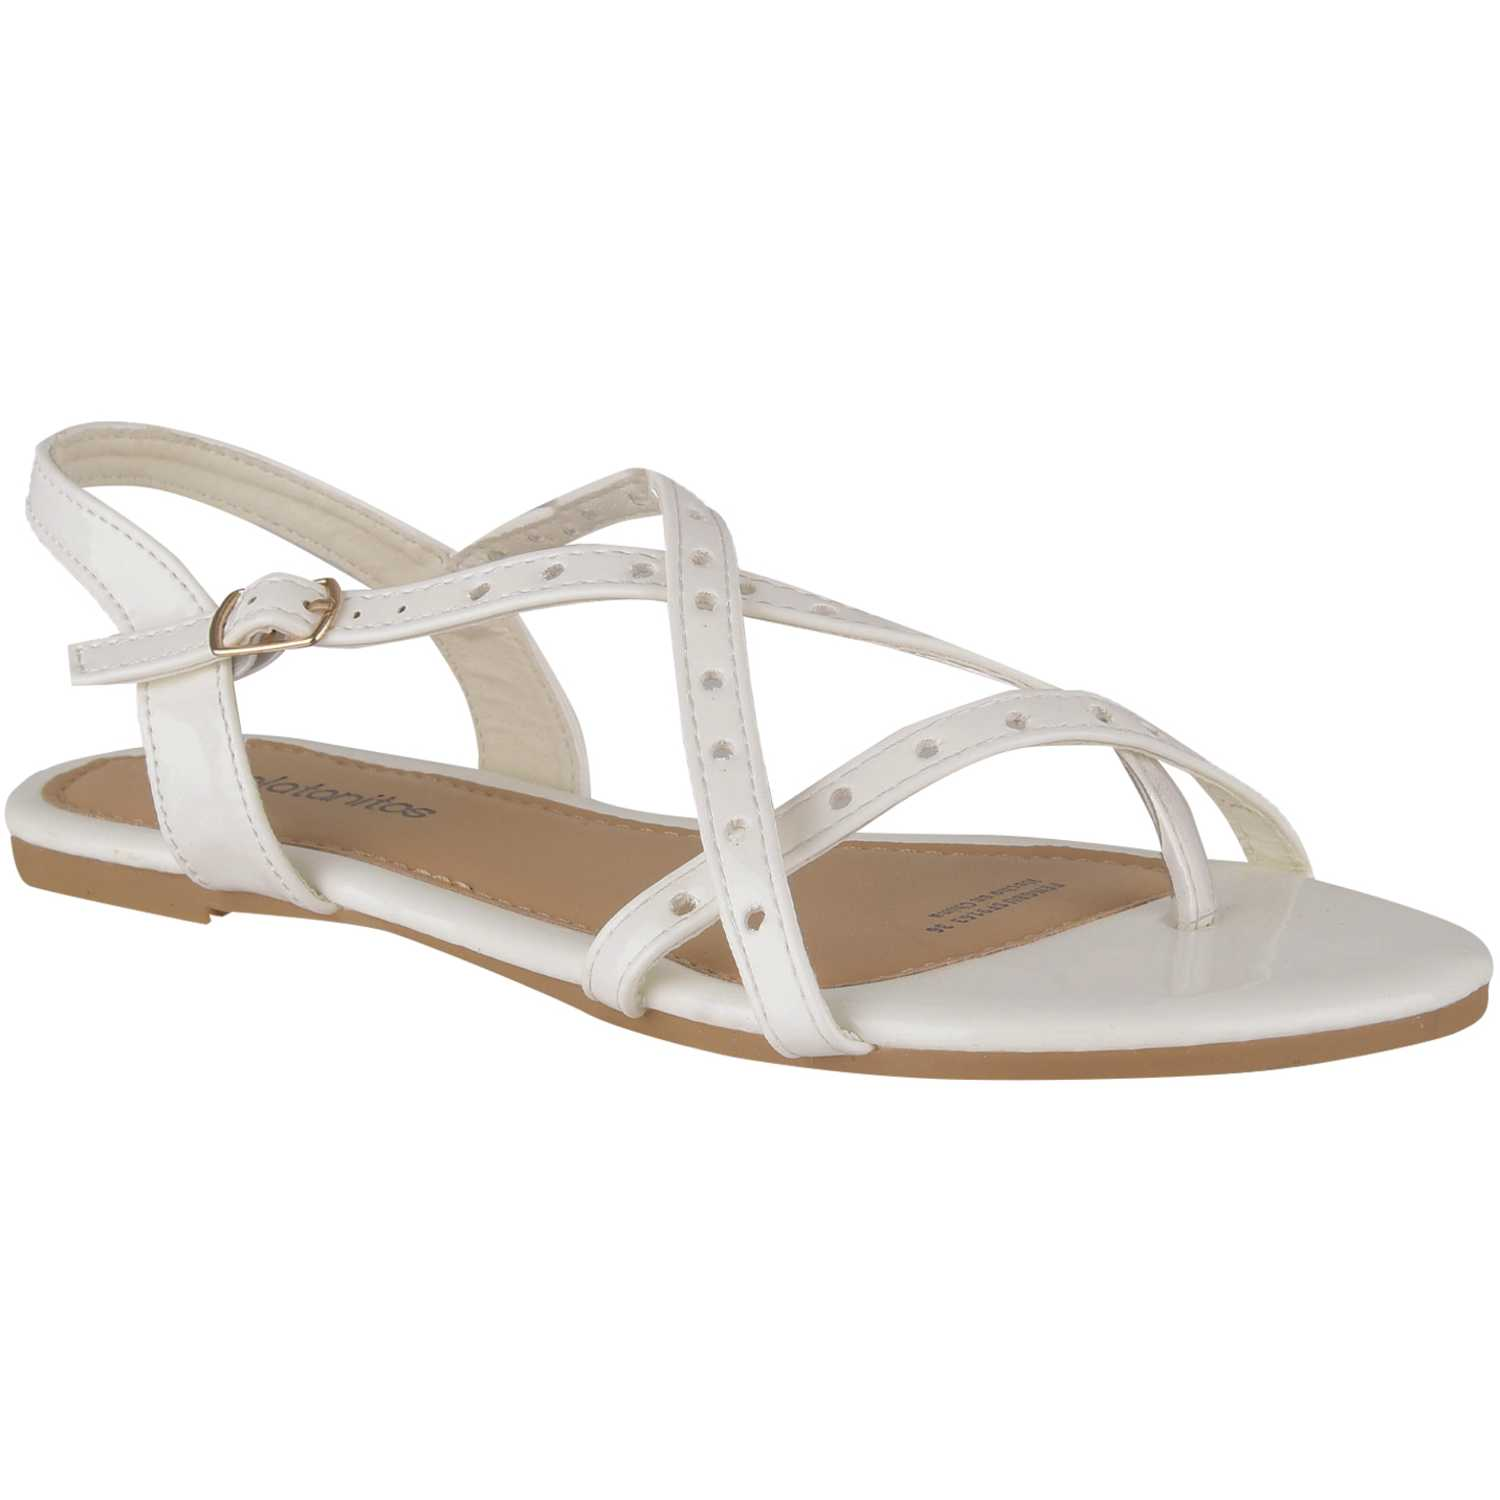 Platanitos sf 9163 Blanco Flats